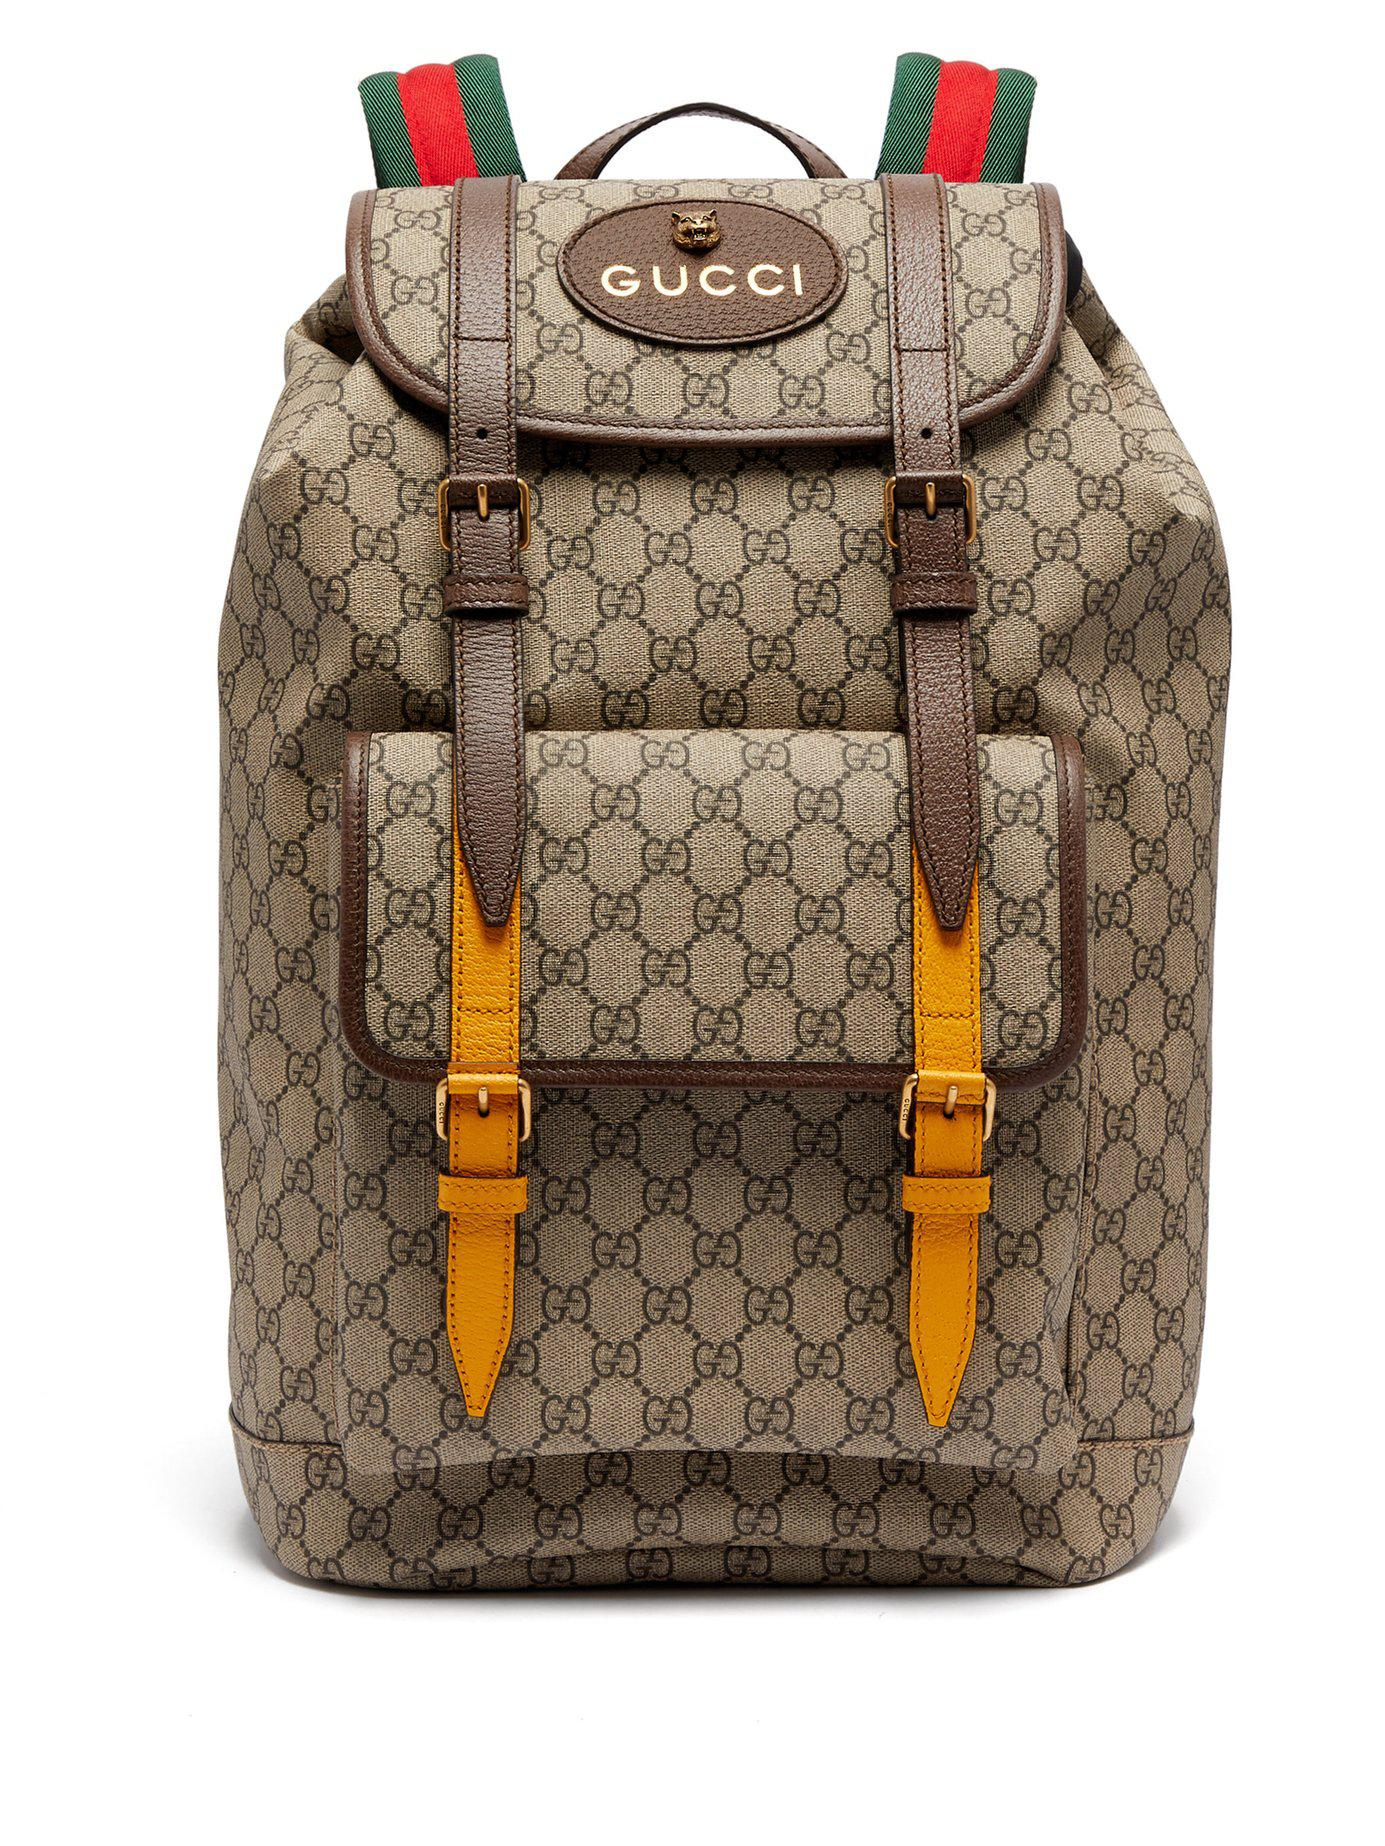 191425eea Gucci Brown Canvas Backpack | Building Materials Bargain Center